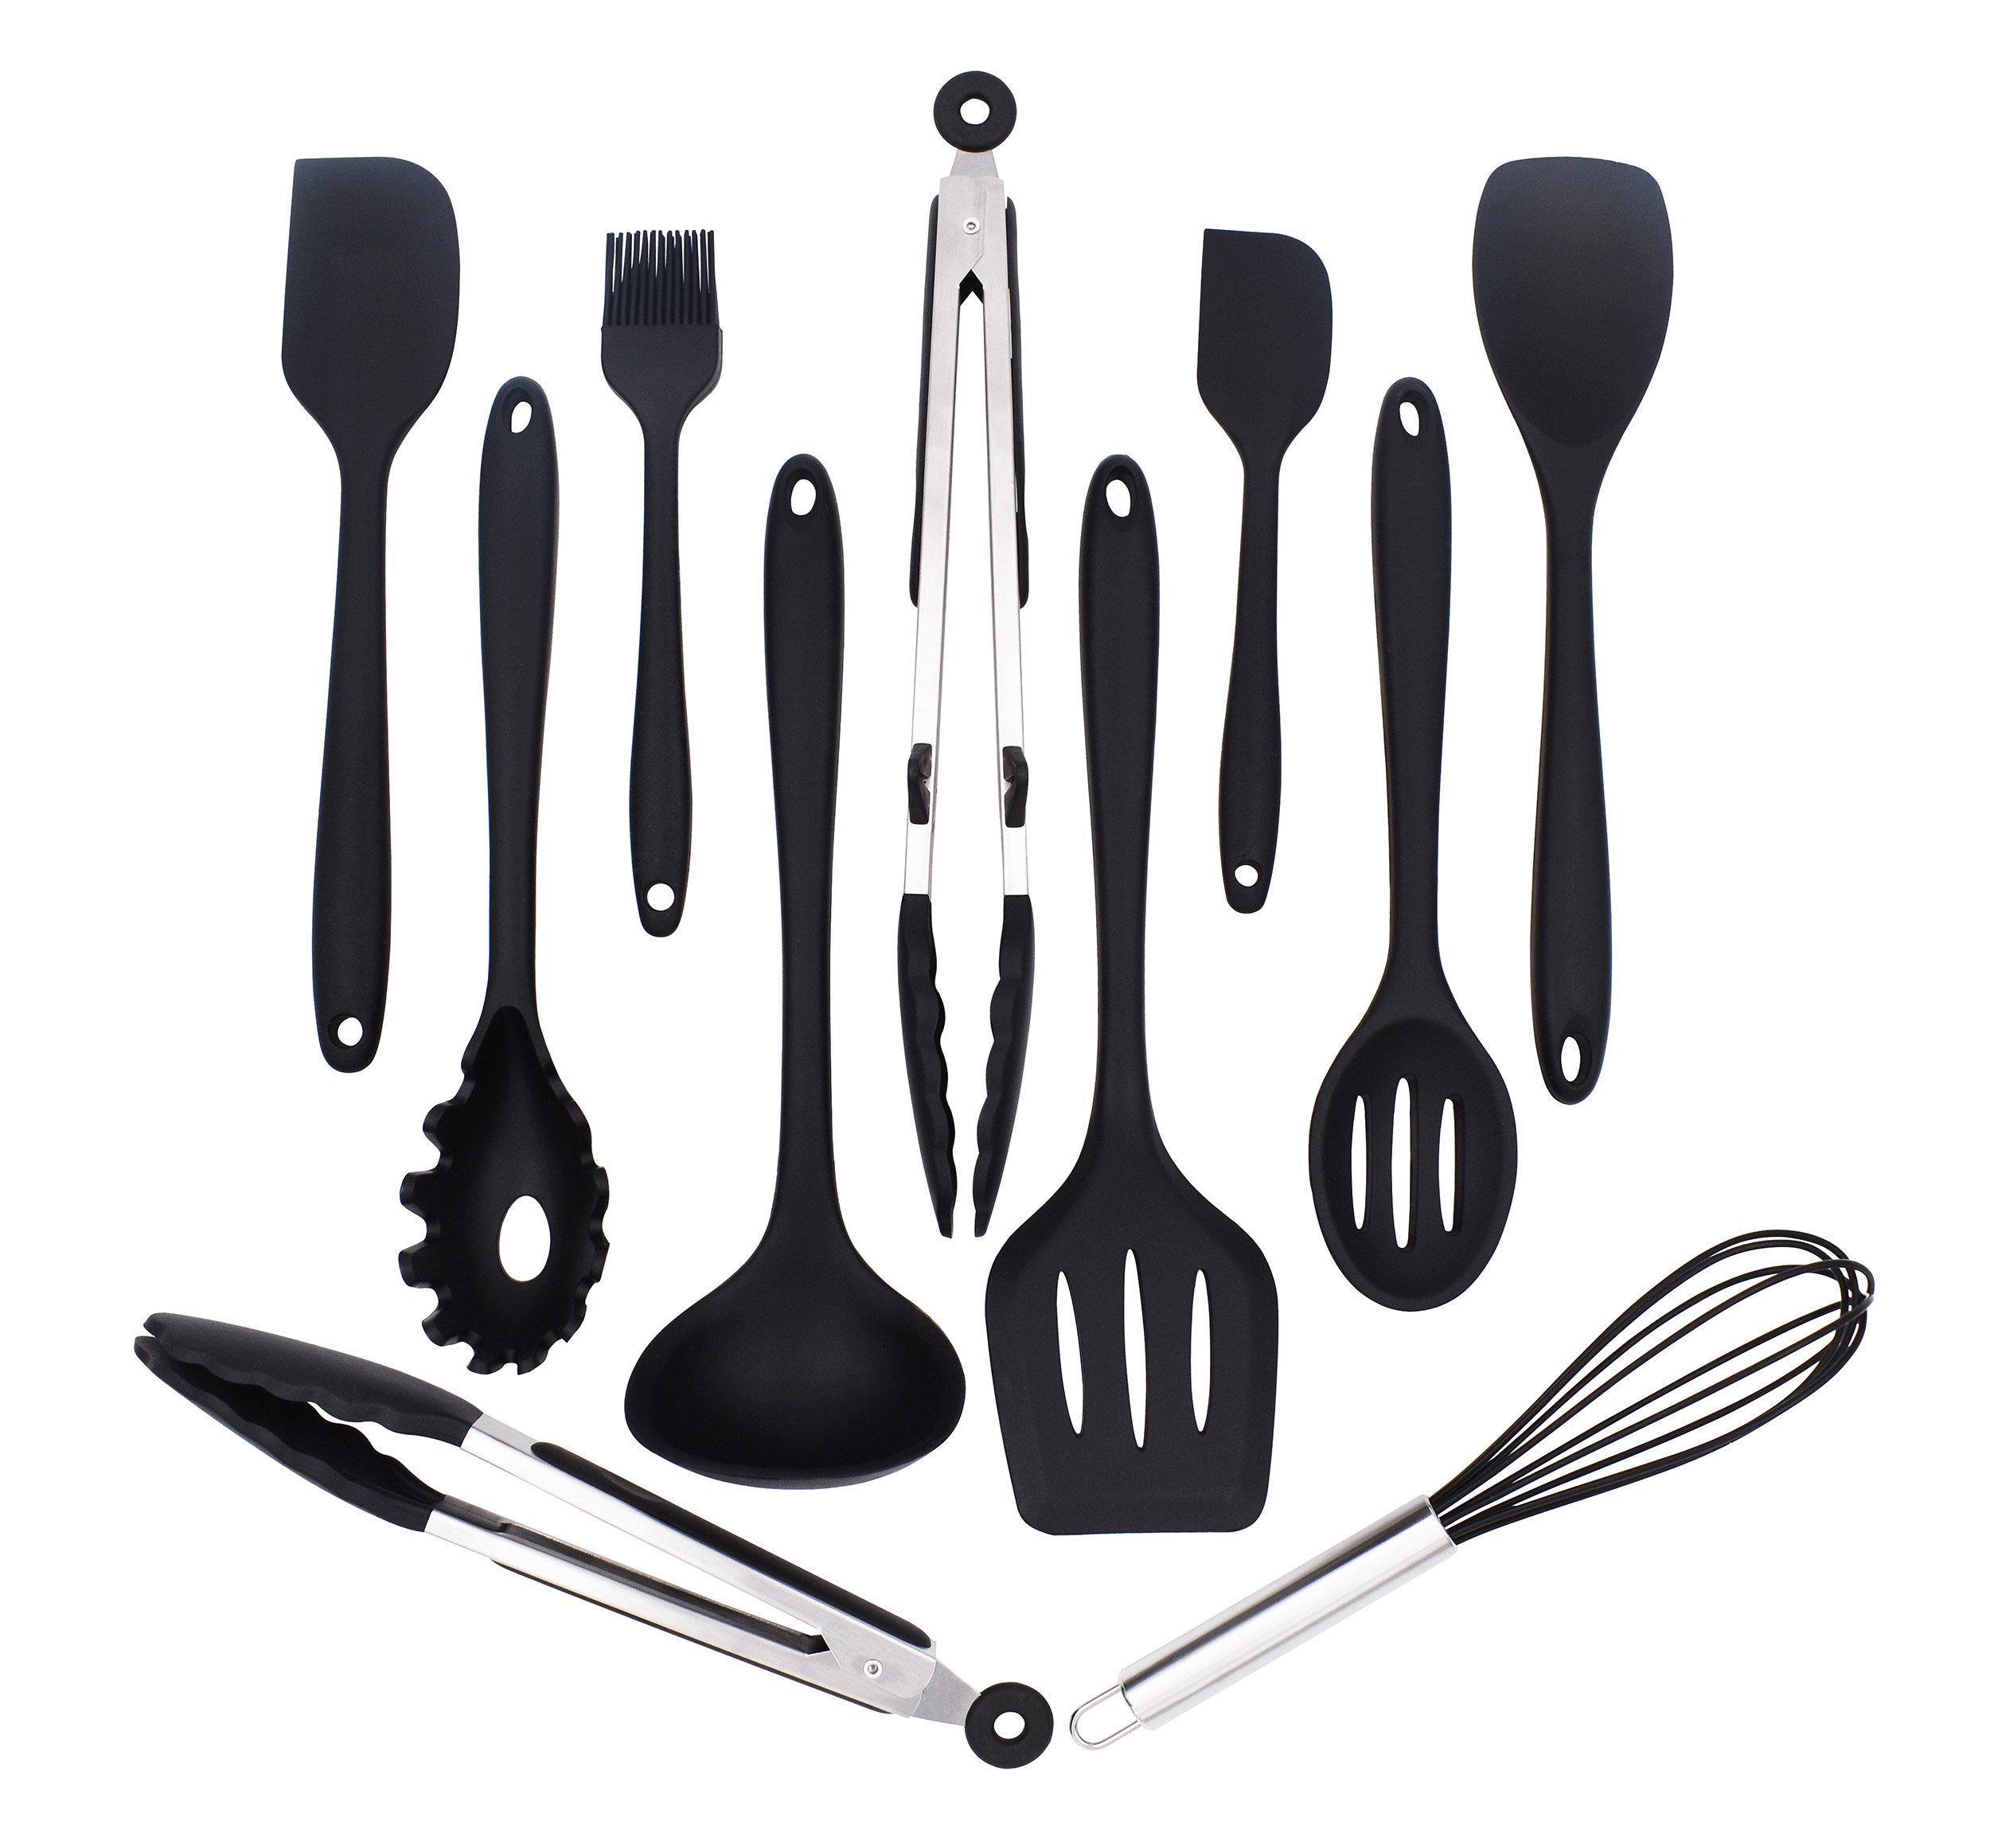 Silicone Kitchen Utensils Set 11 Piece Cooking Tool And Gadget Set Baking  Whisk Brush Spatulas (Black)